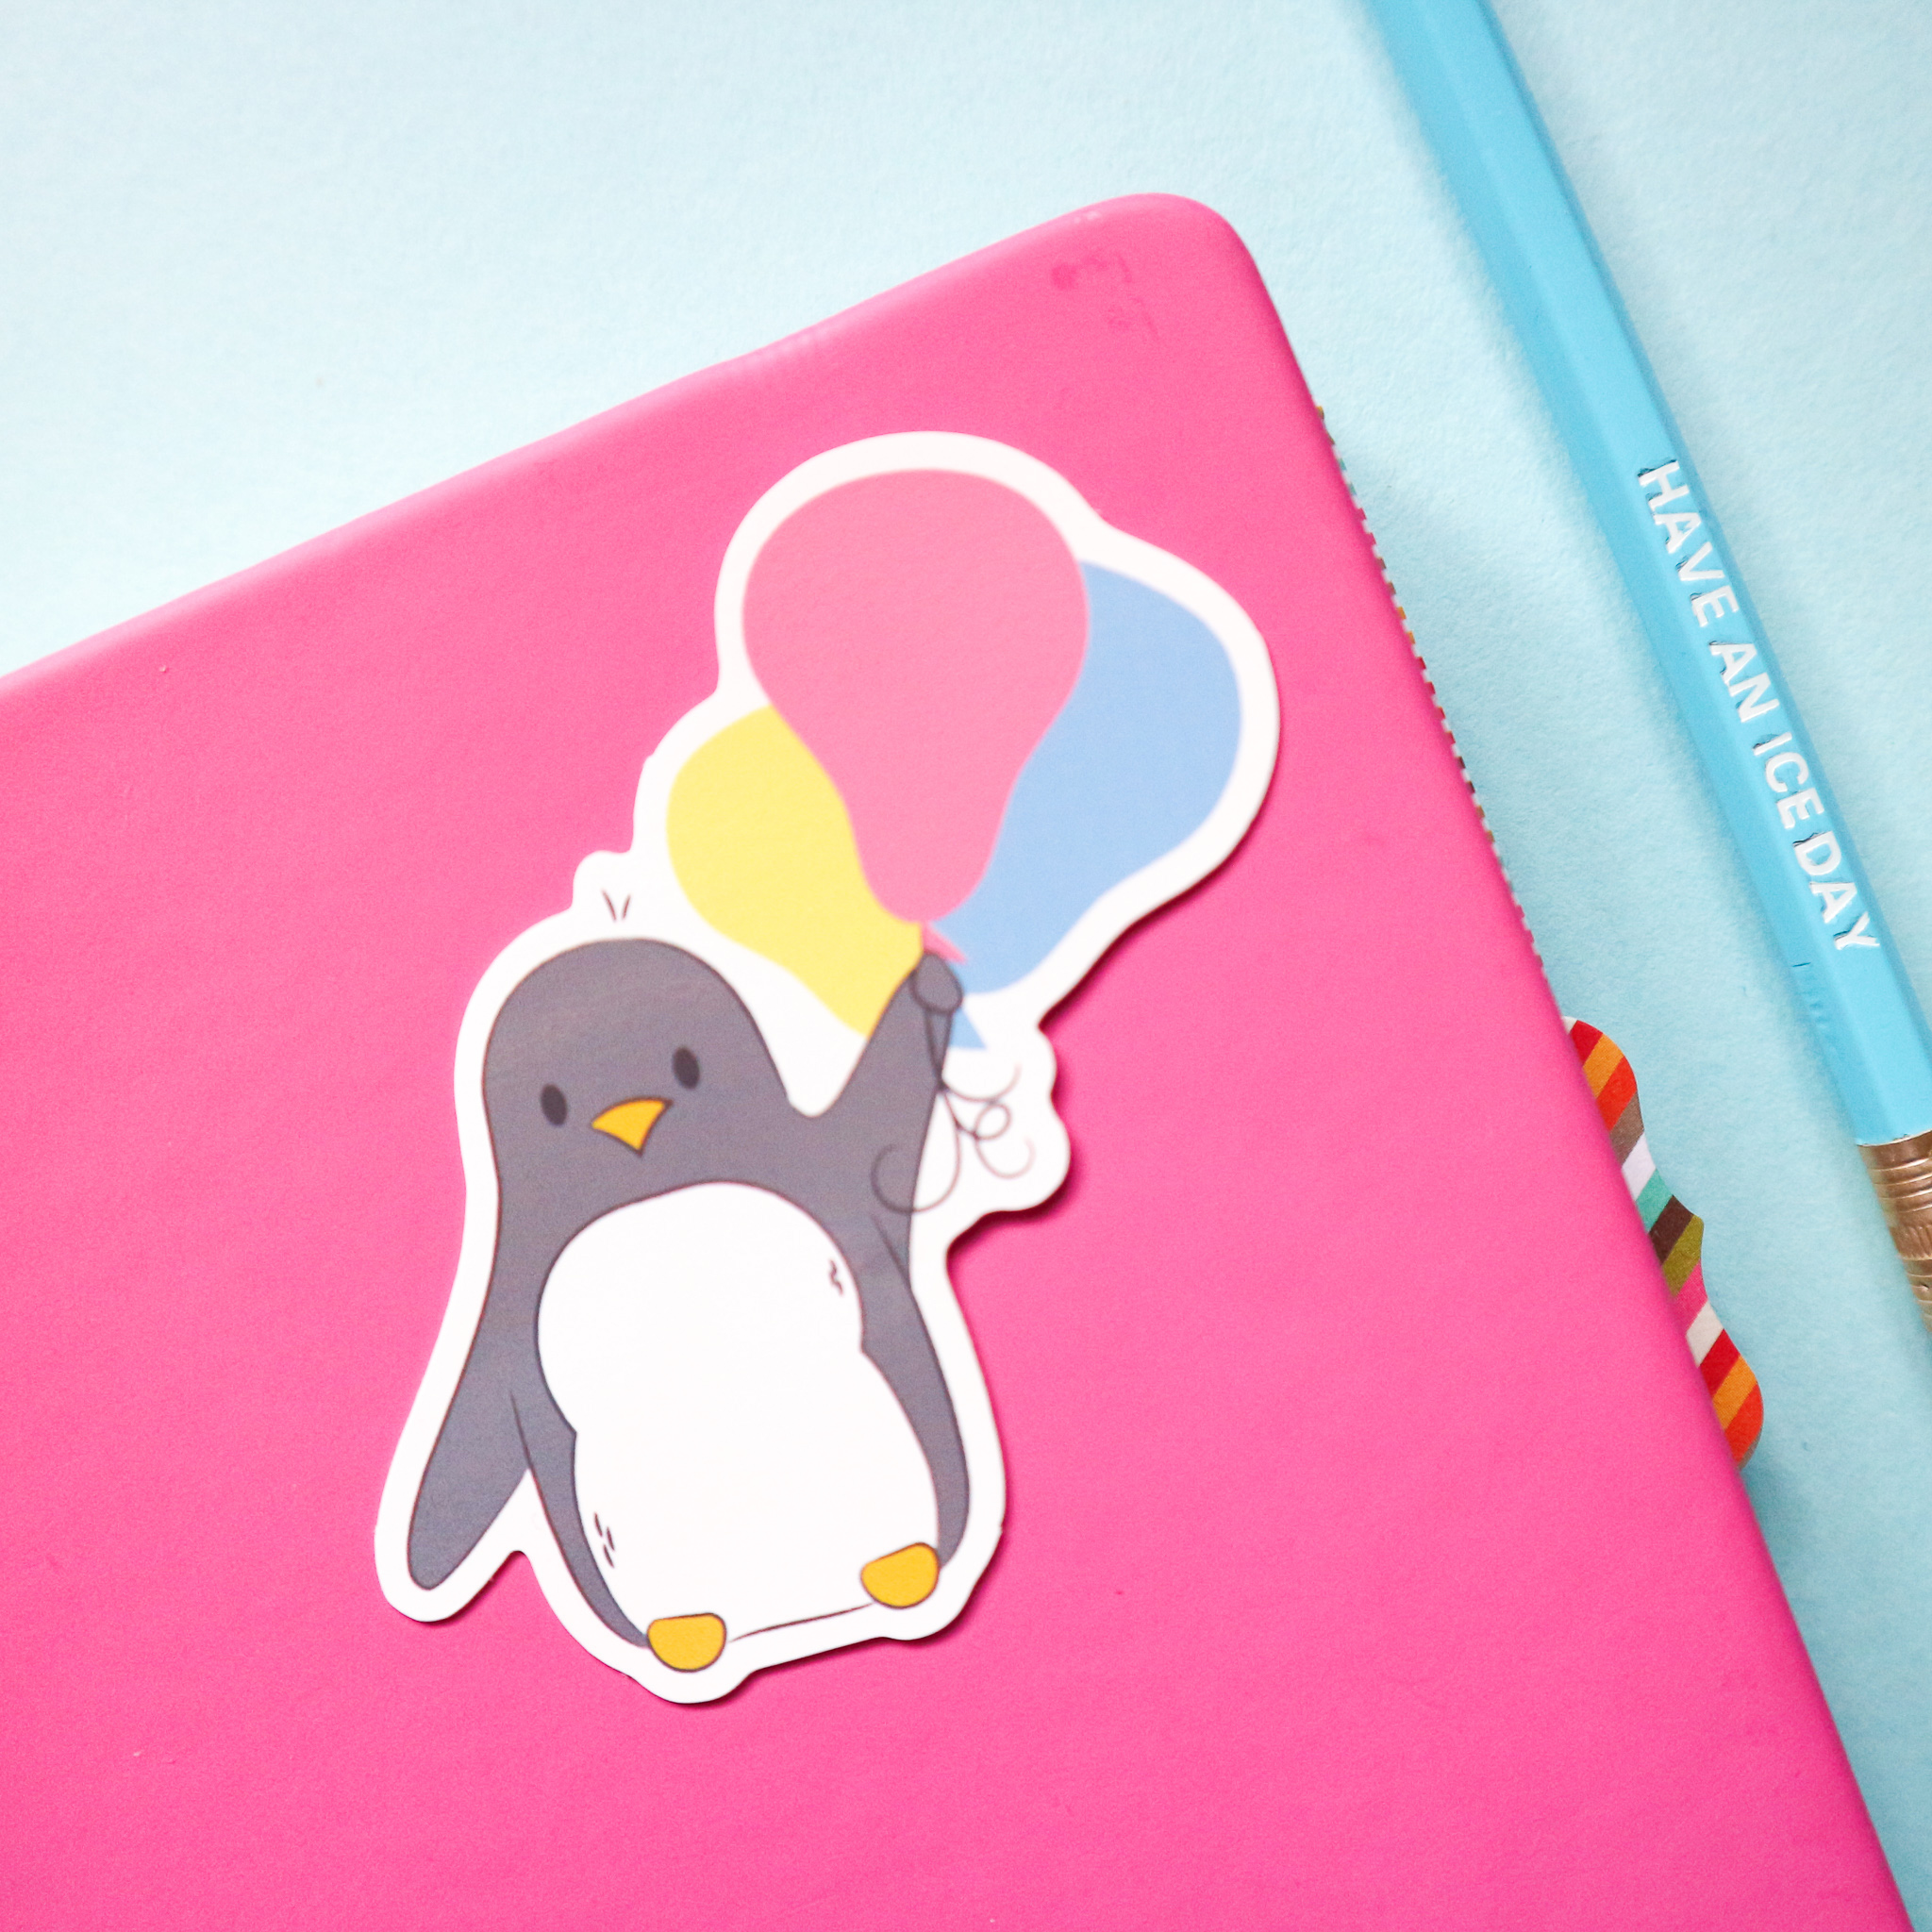 "an illustrated sticker of a cute penguin floating away with a bunch of balloons. The sticker is stuck on a pink notebook and styled with my ""Have an ice day"" pencil."